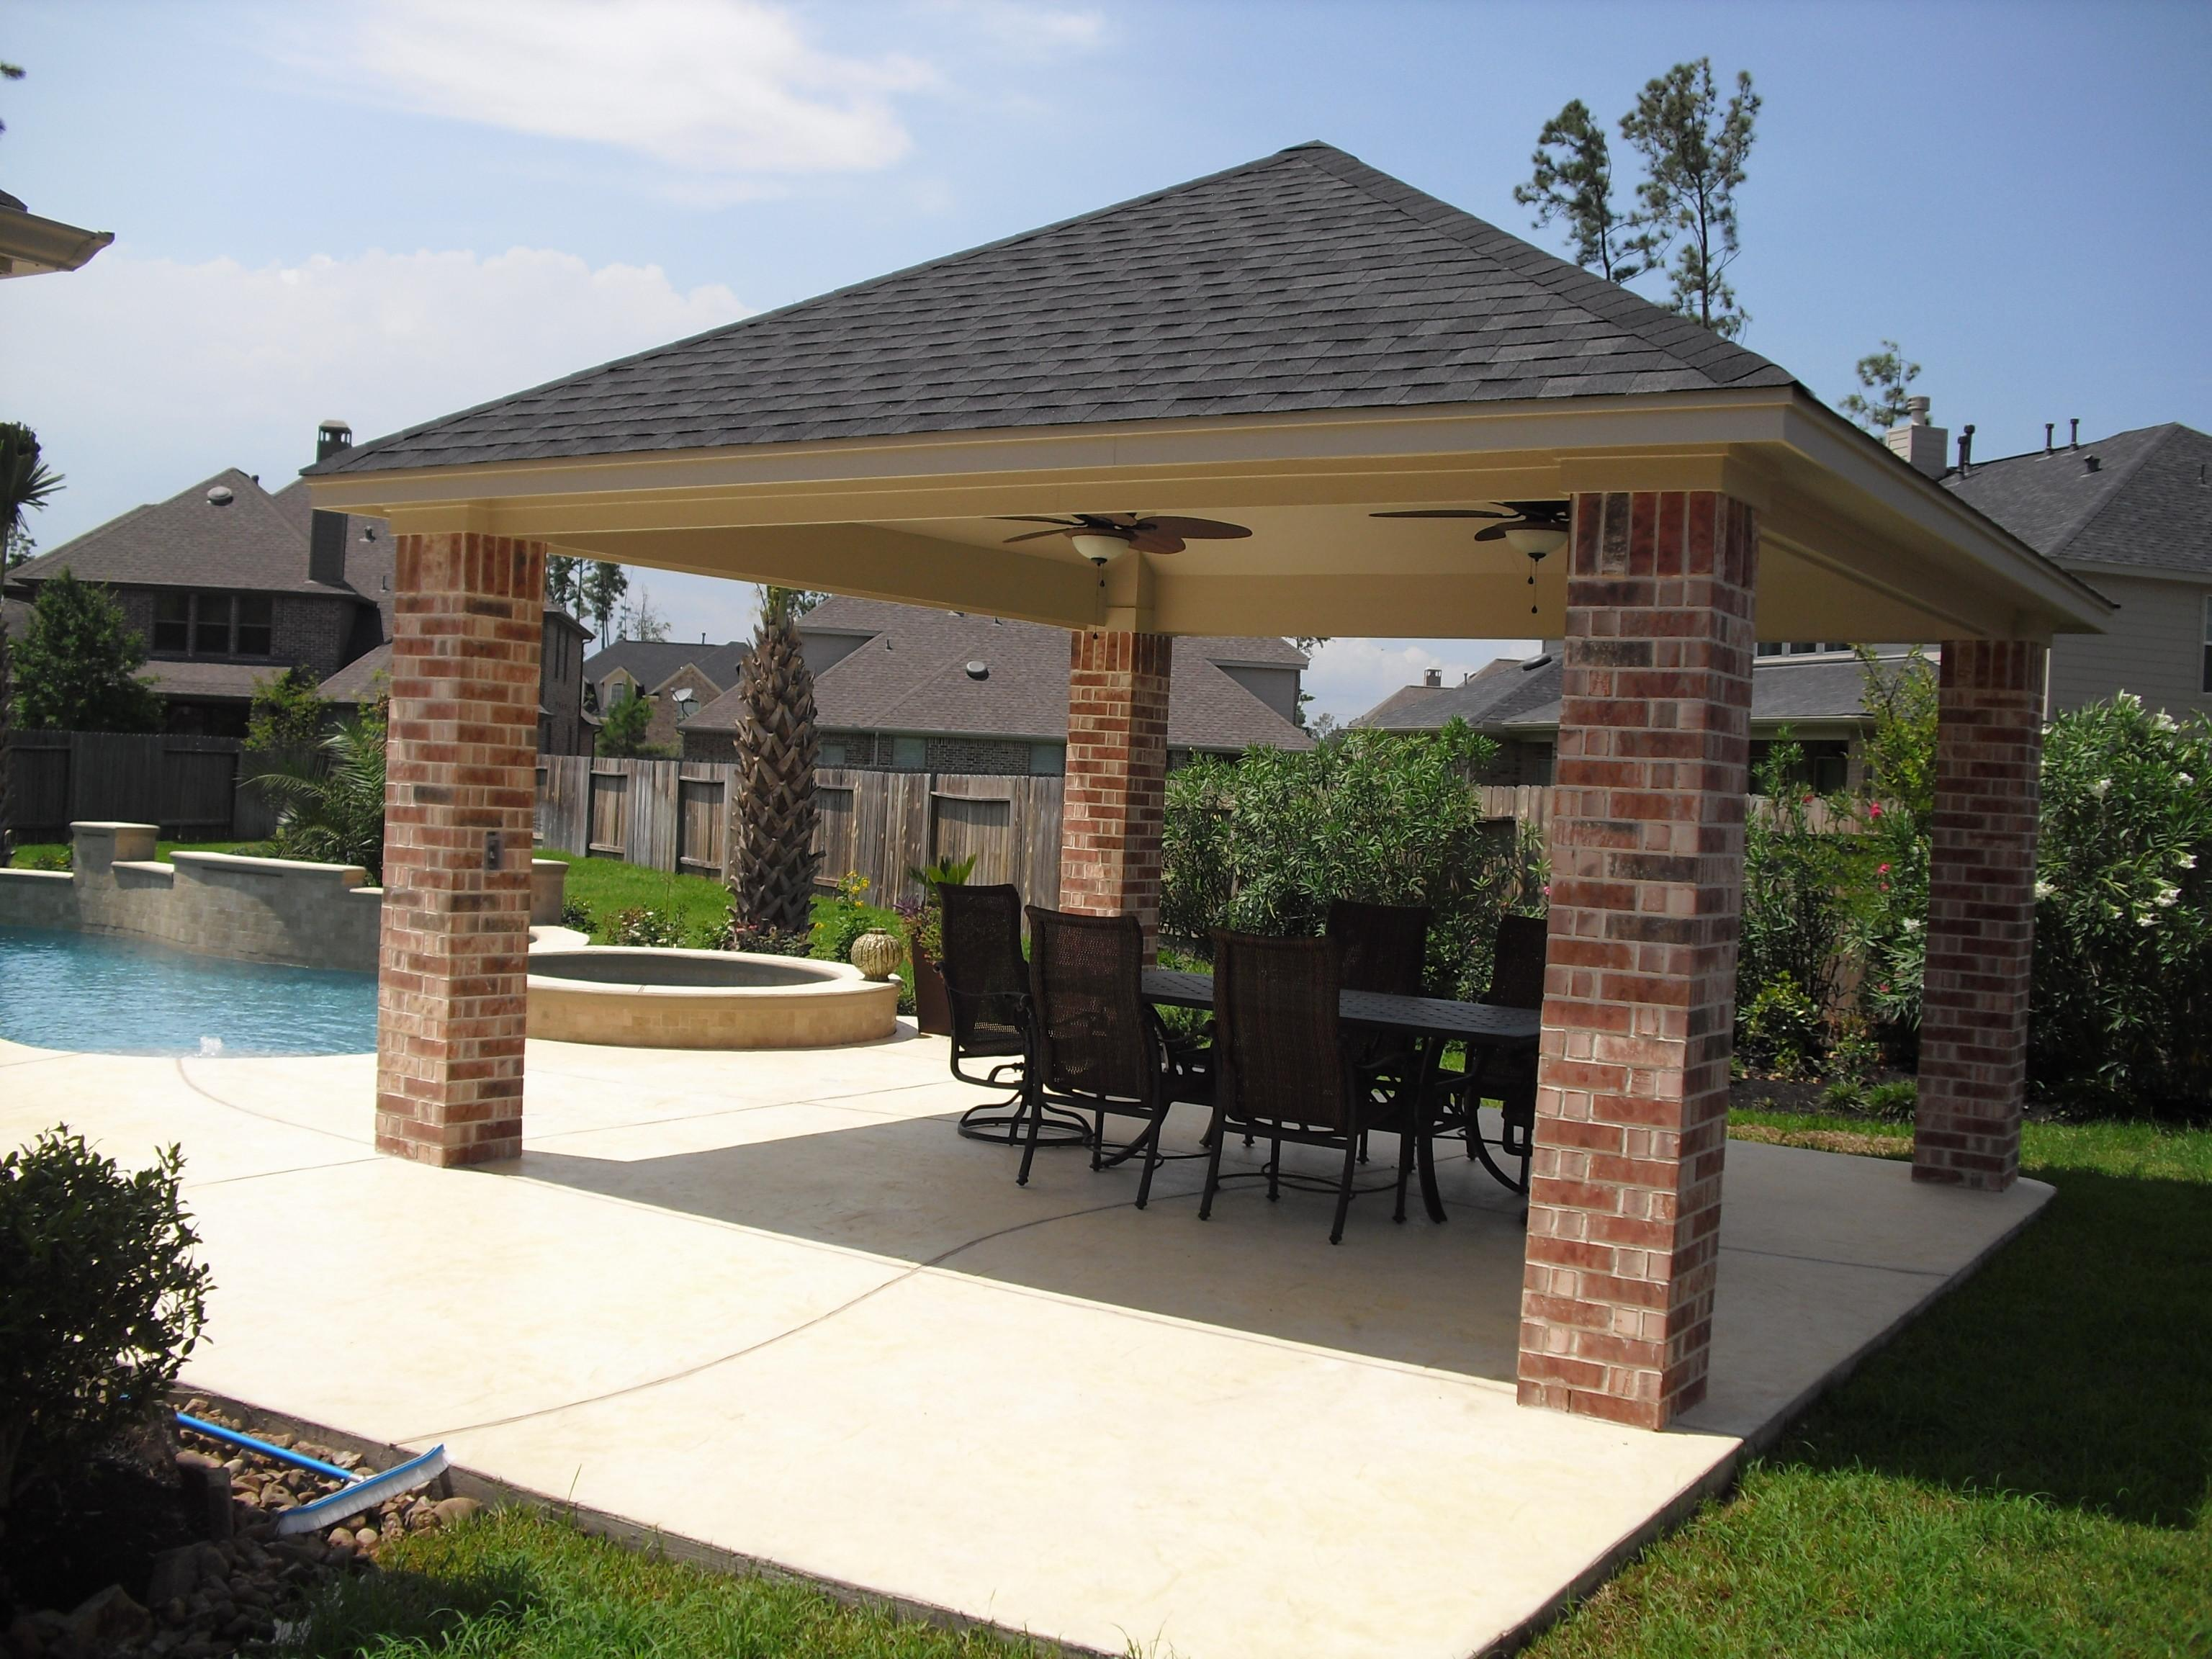 Standing Patio Covers Gazebos Pool Cabanas